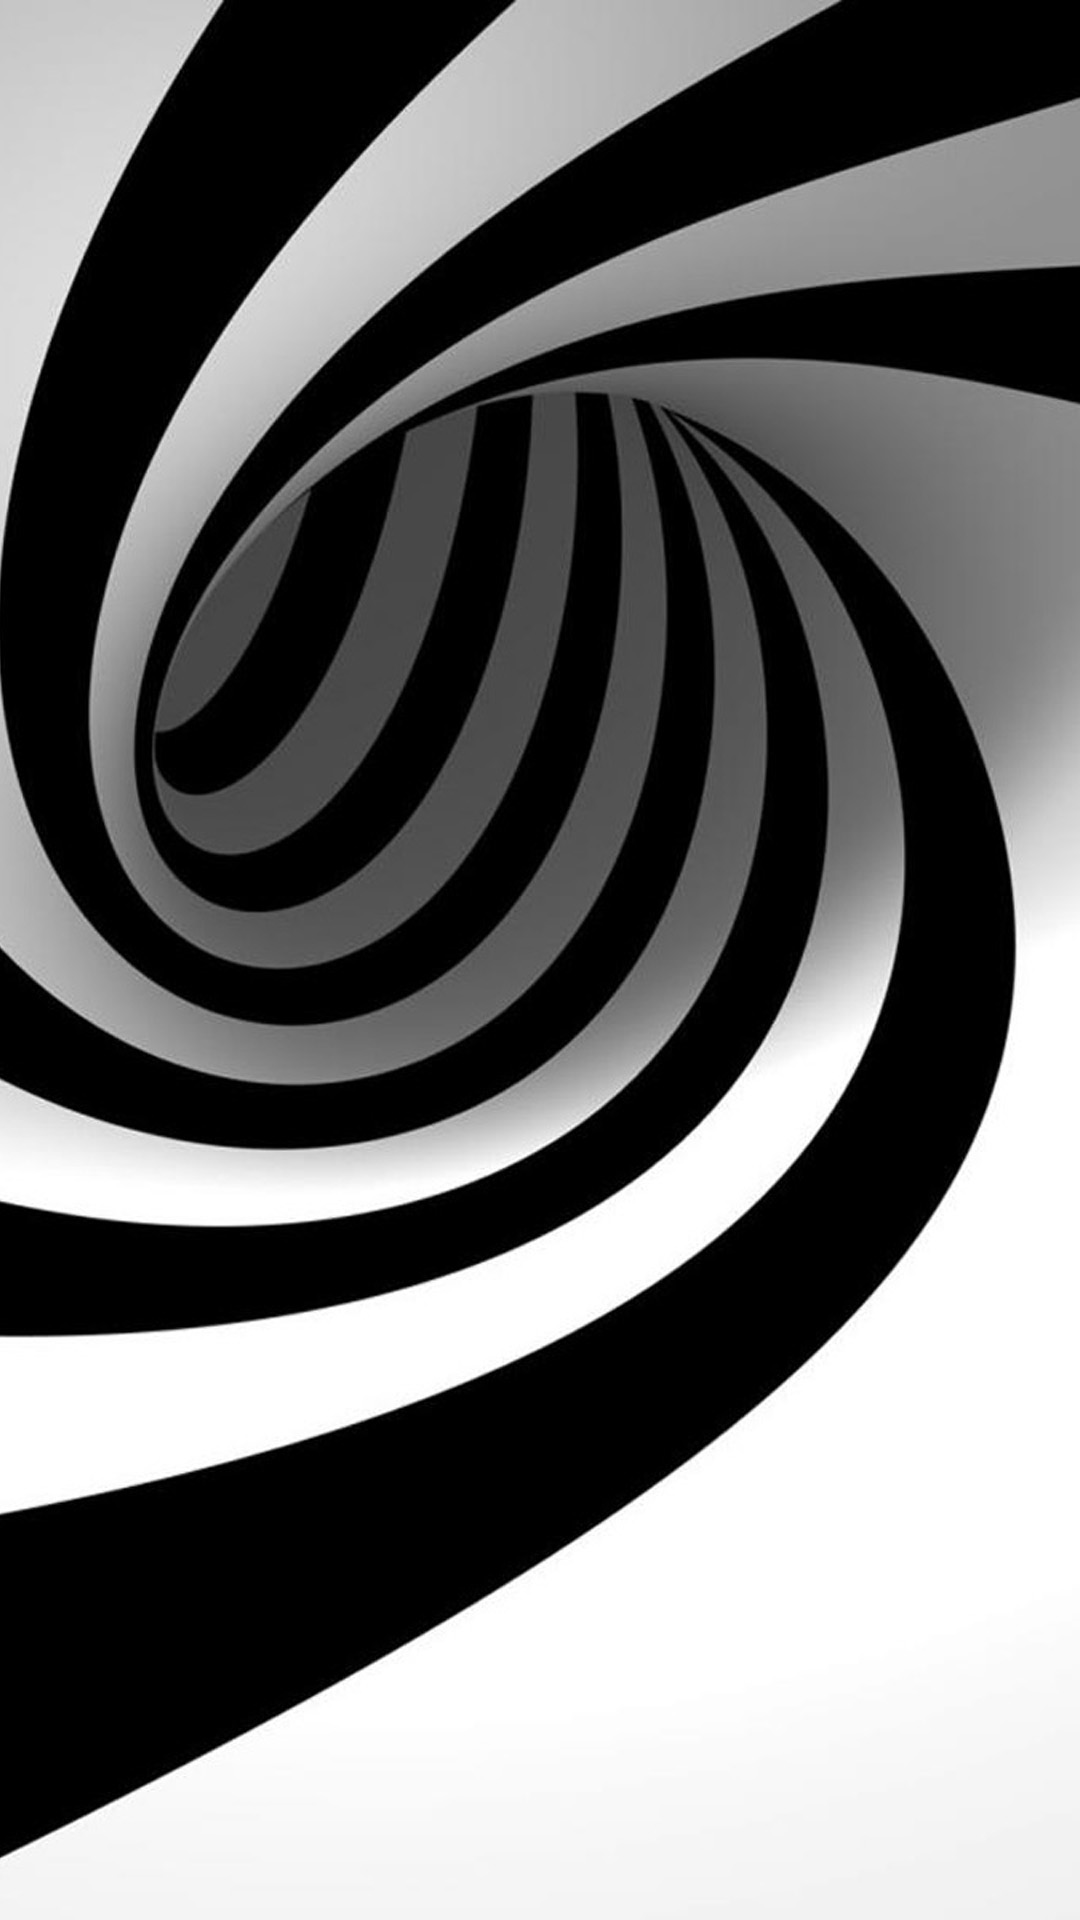 Black And White Swirl iPhone 6 Wallpaper Download iPhone Wallpapers 1080x1920